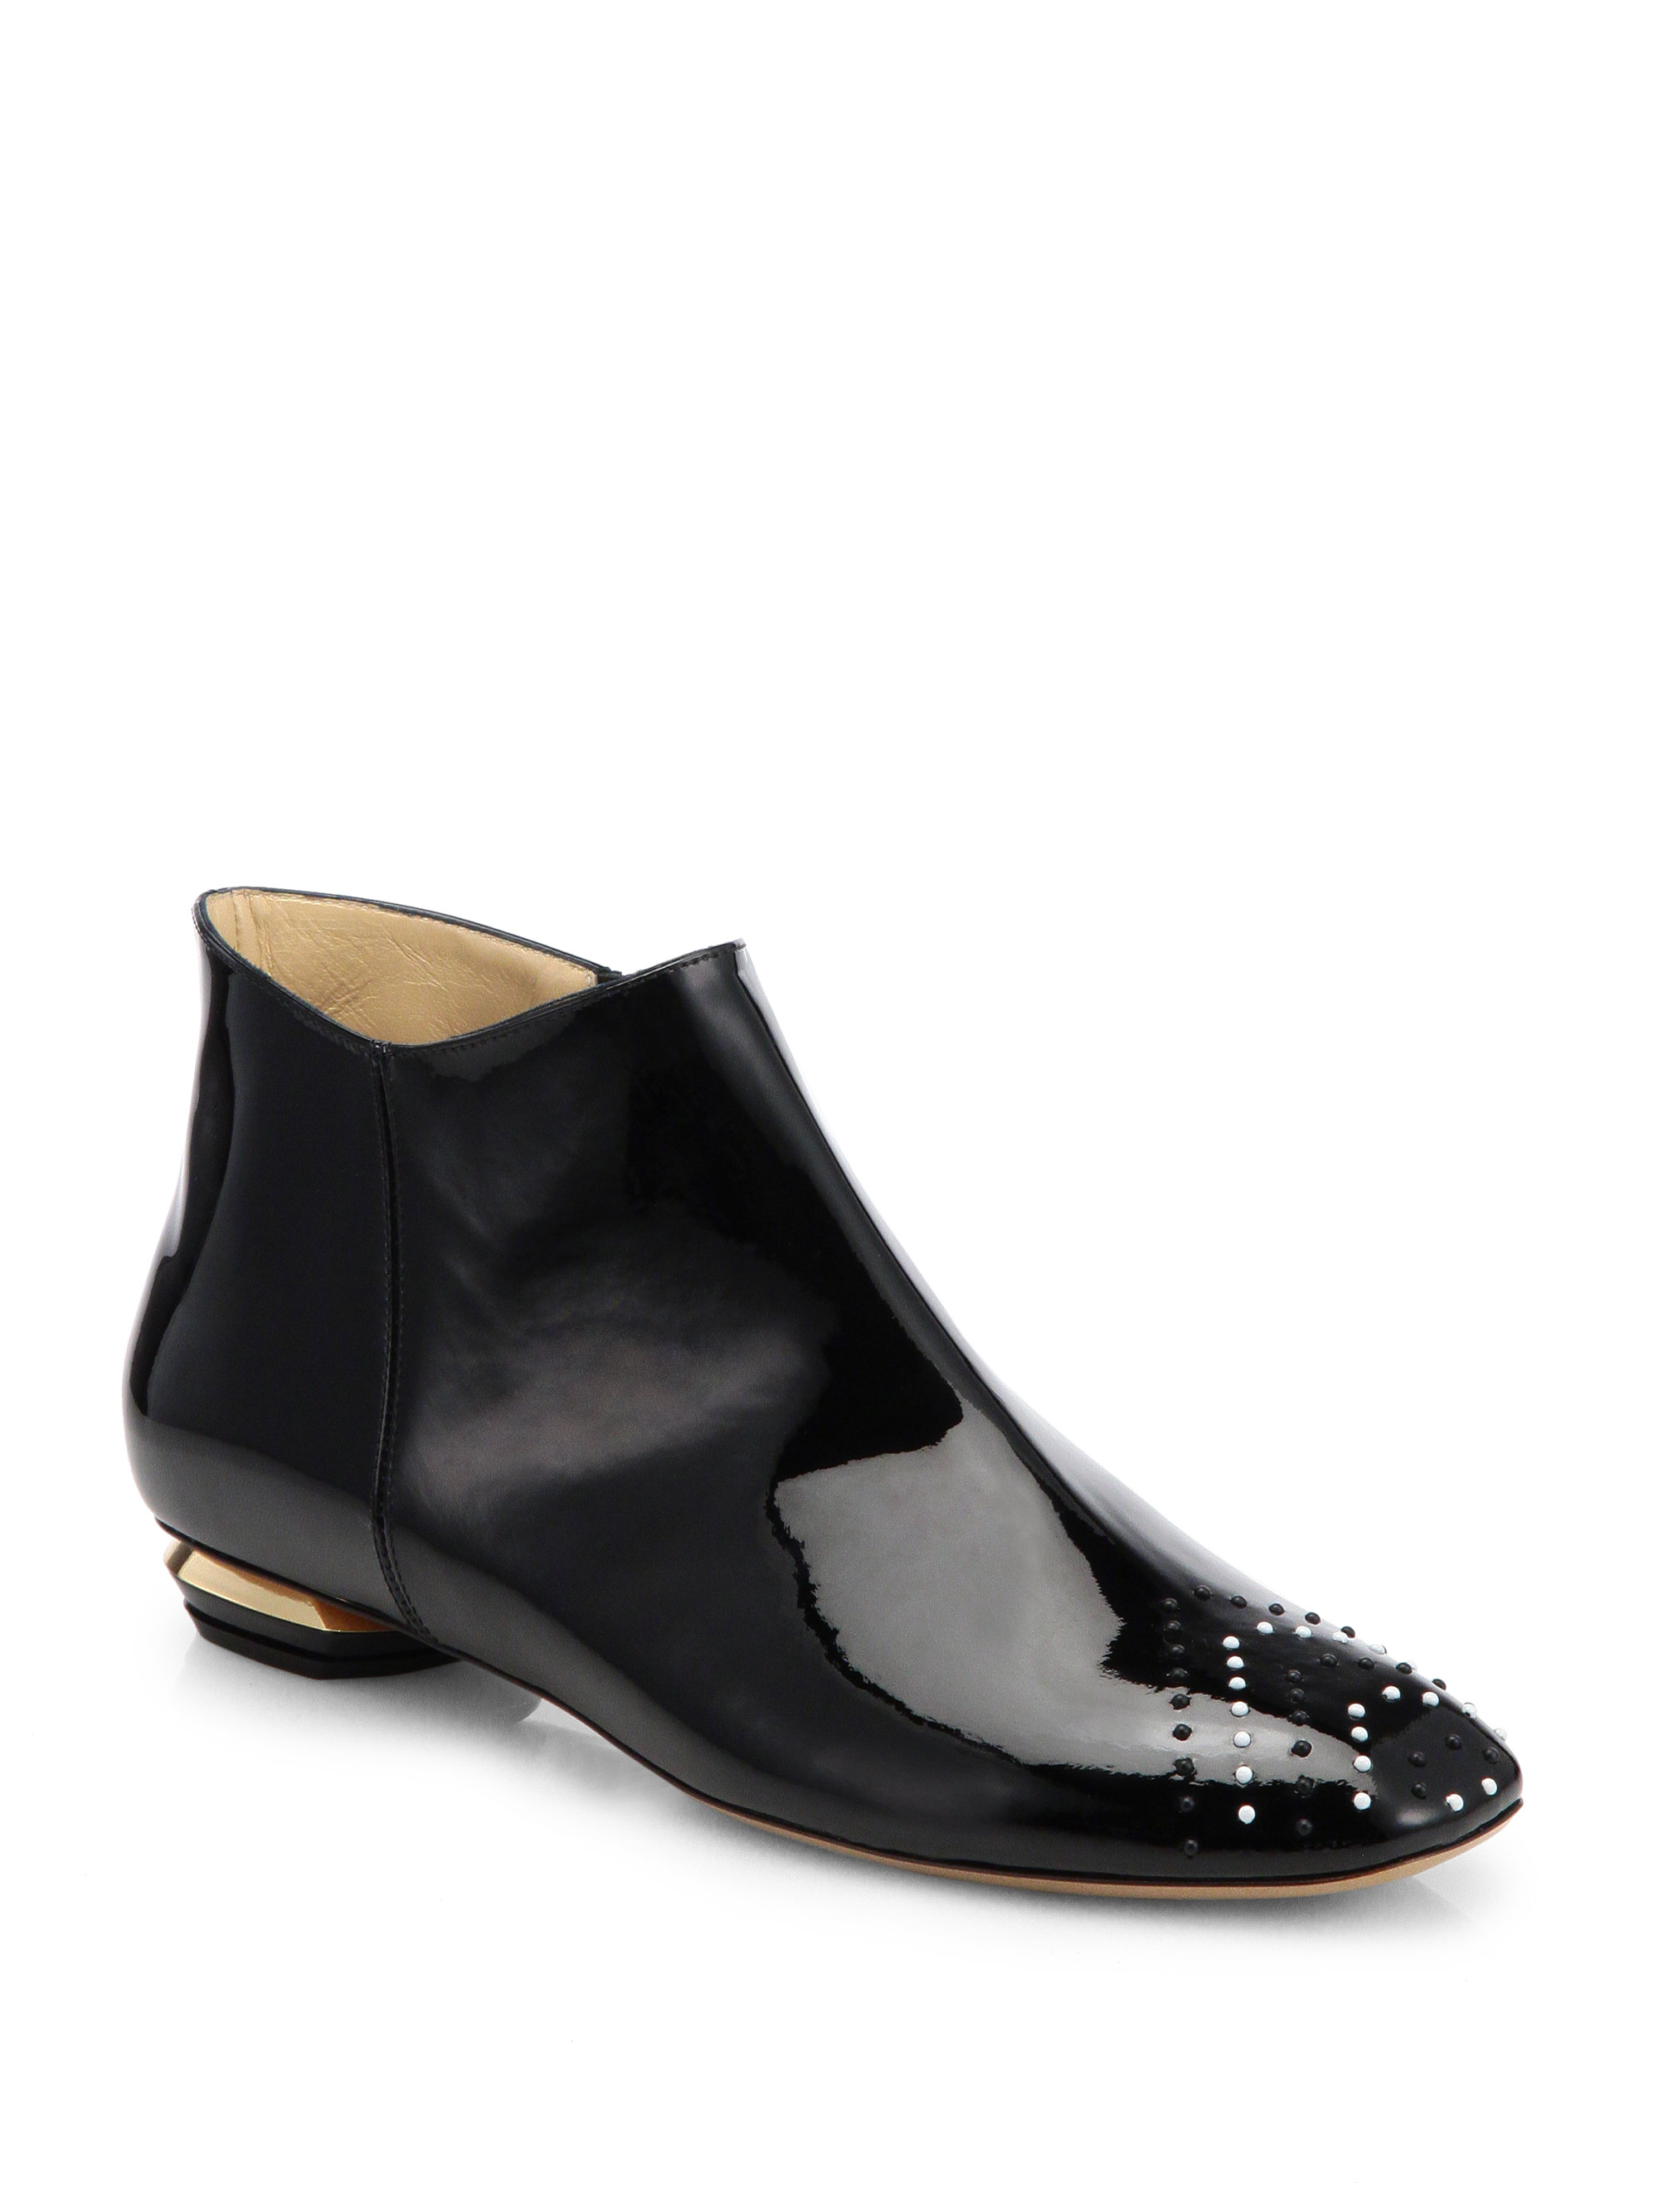 nicholas kirkwood studded patent leather ankle boots in